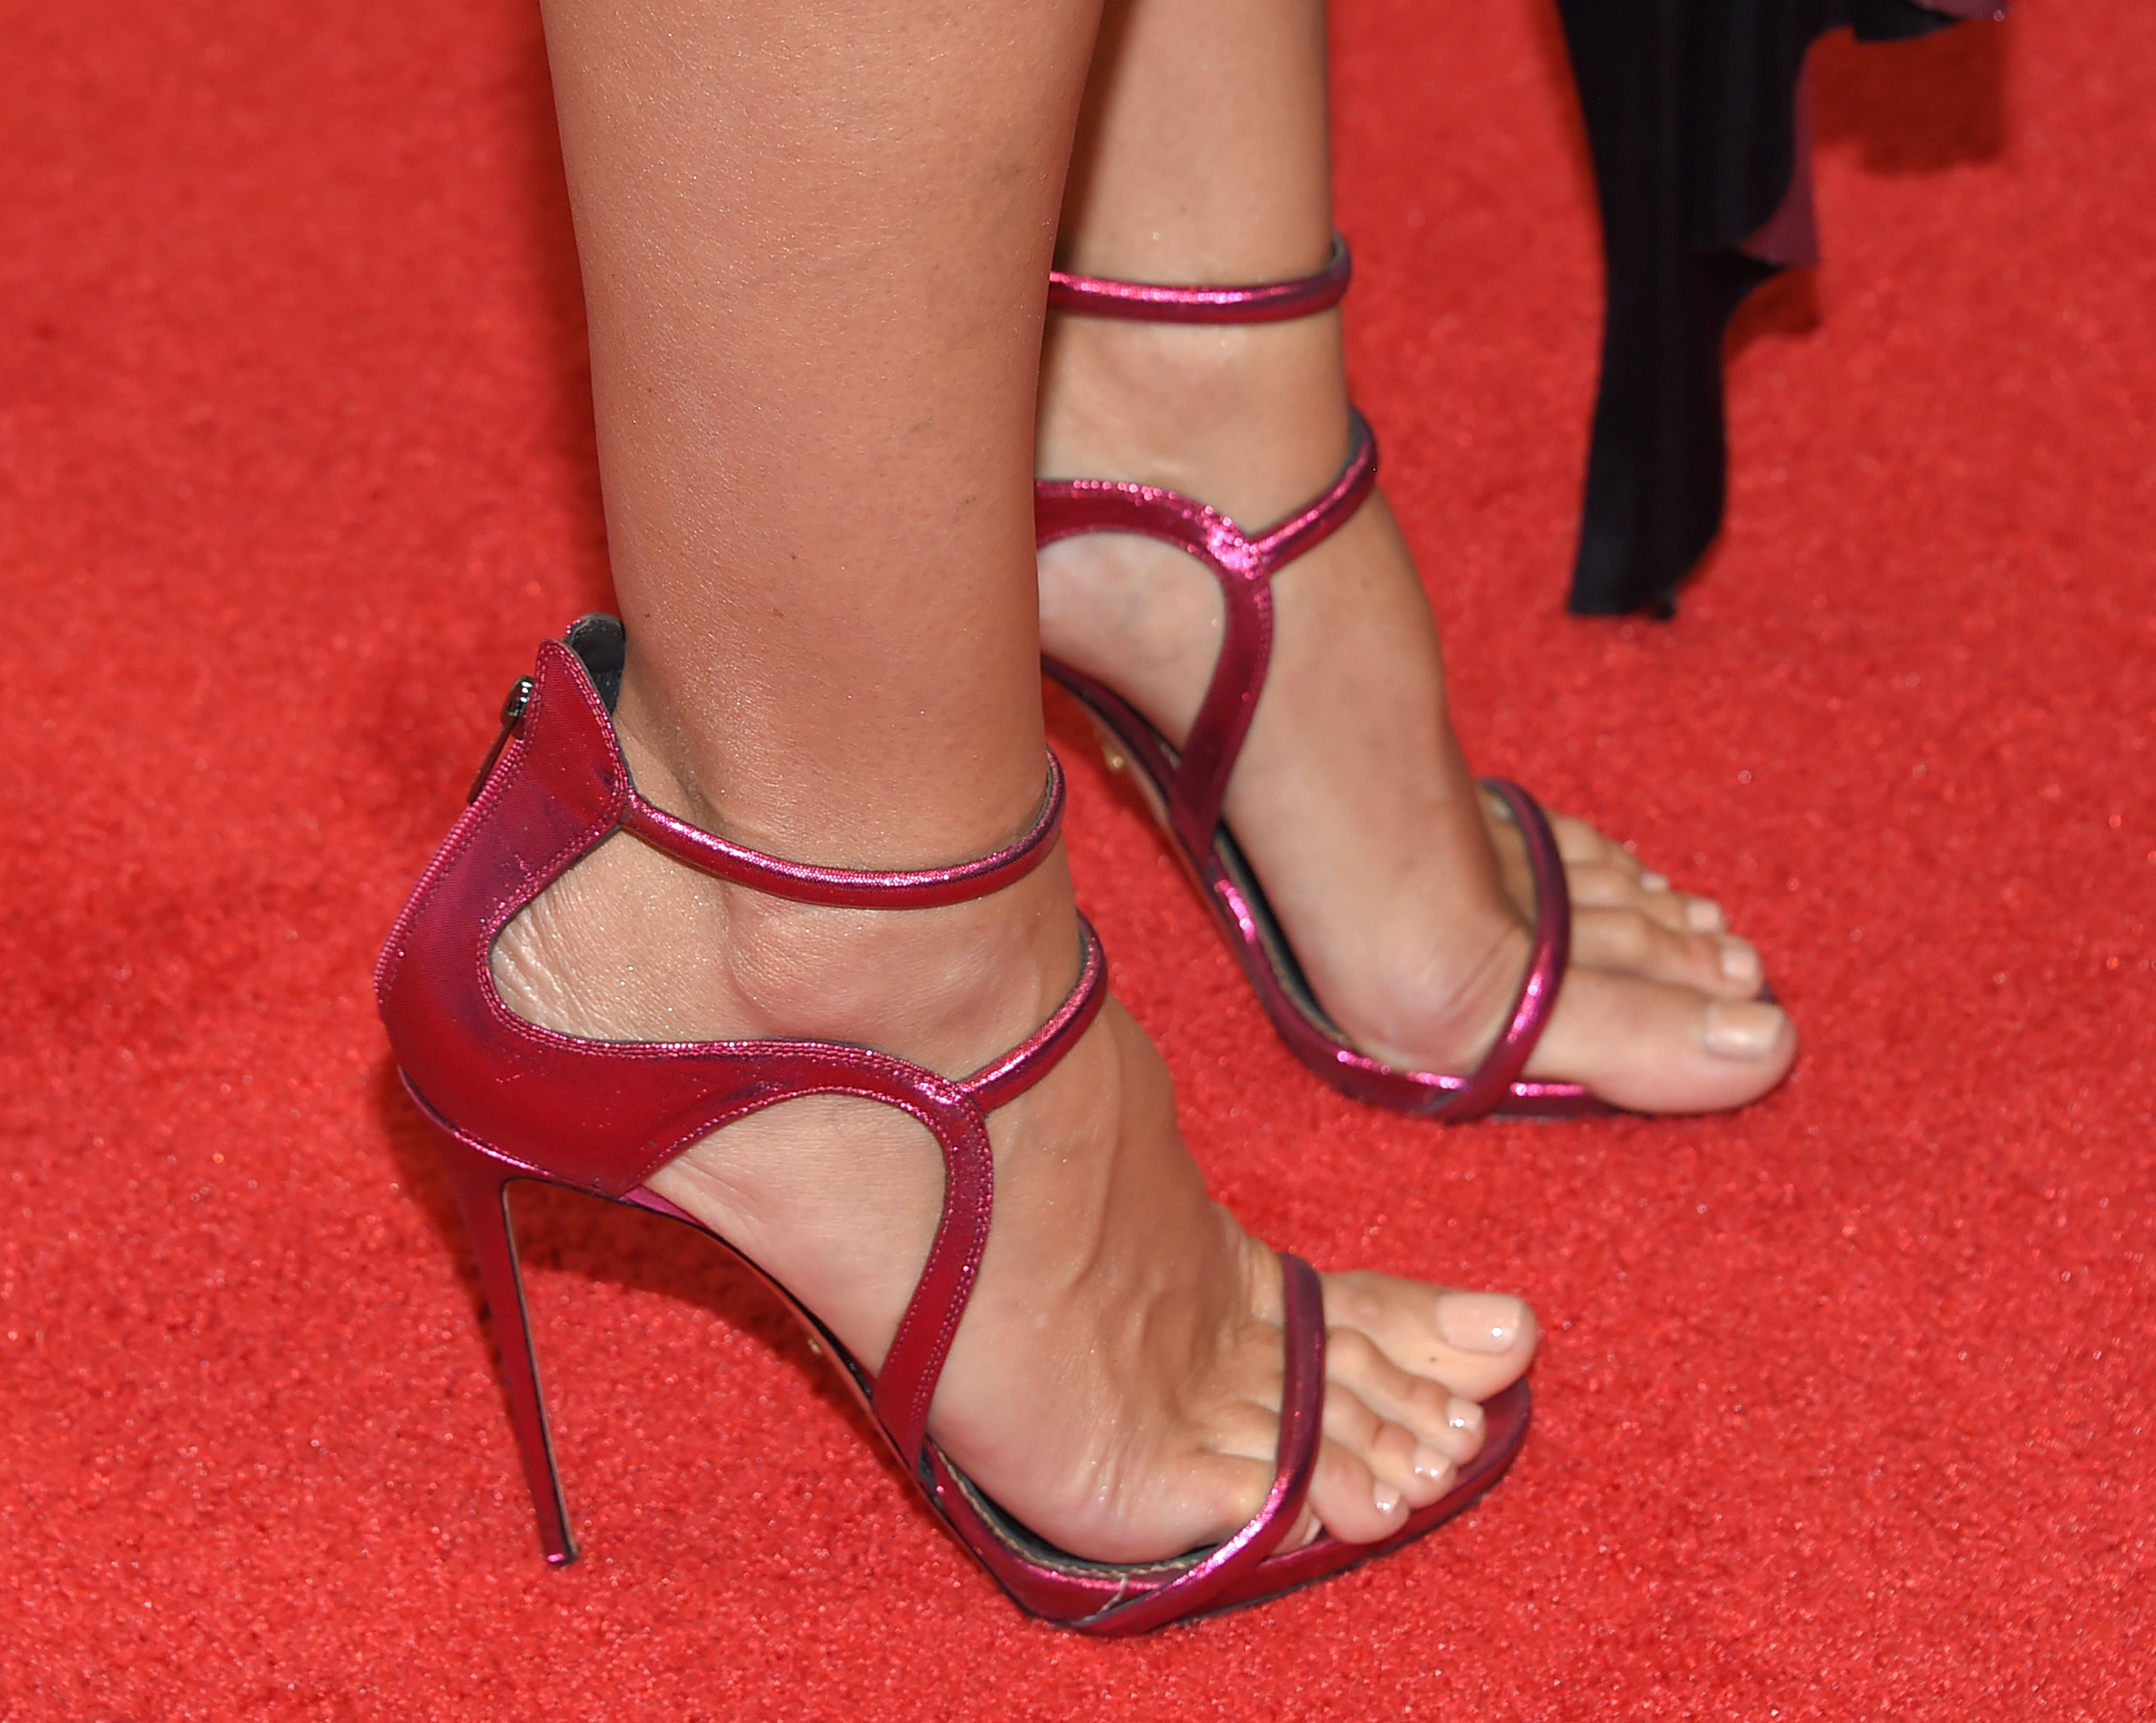 49 sexy photos of Heidi Klum Feet that will leave you stumped